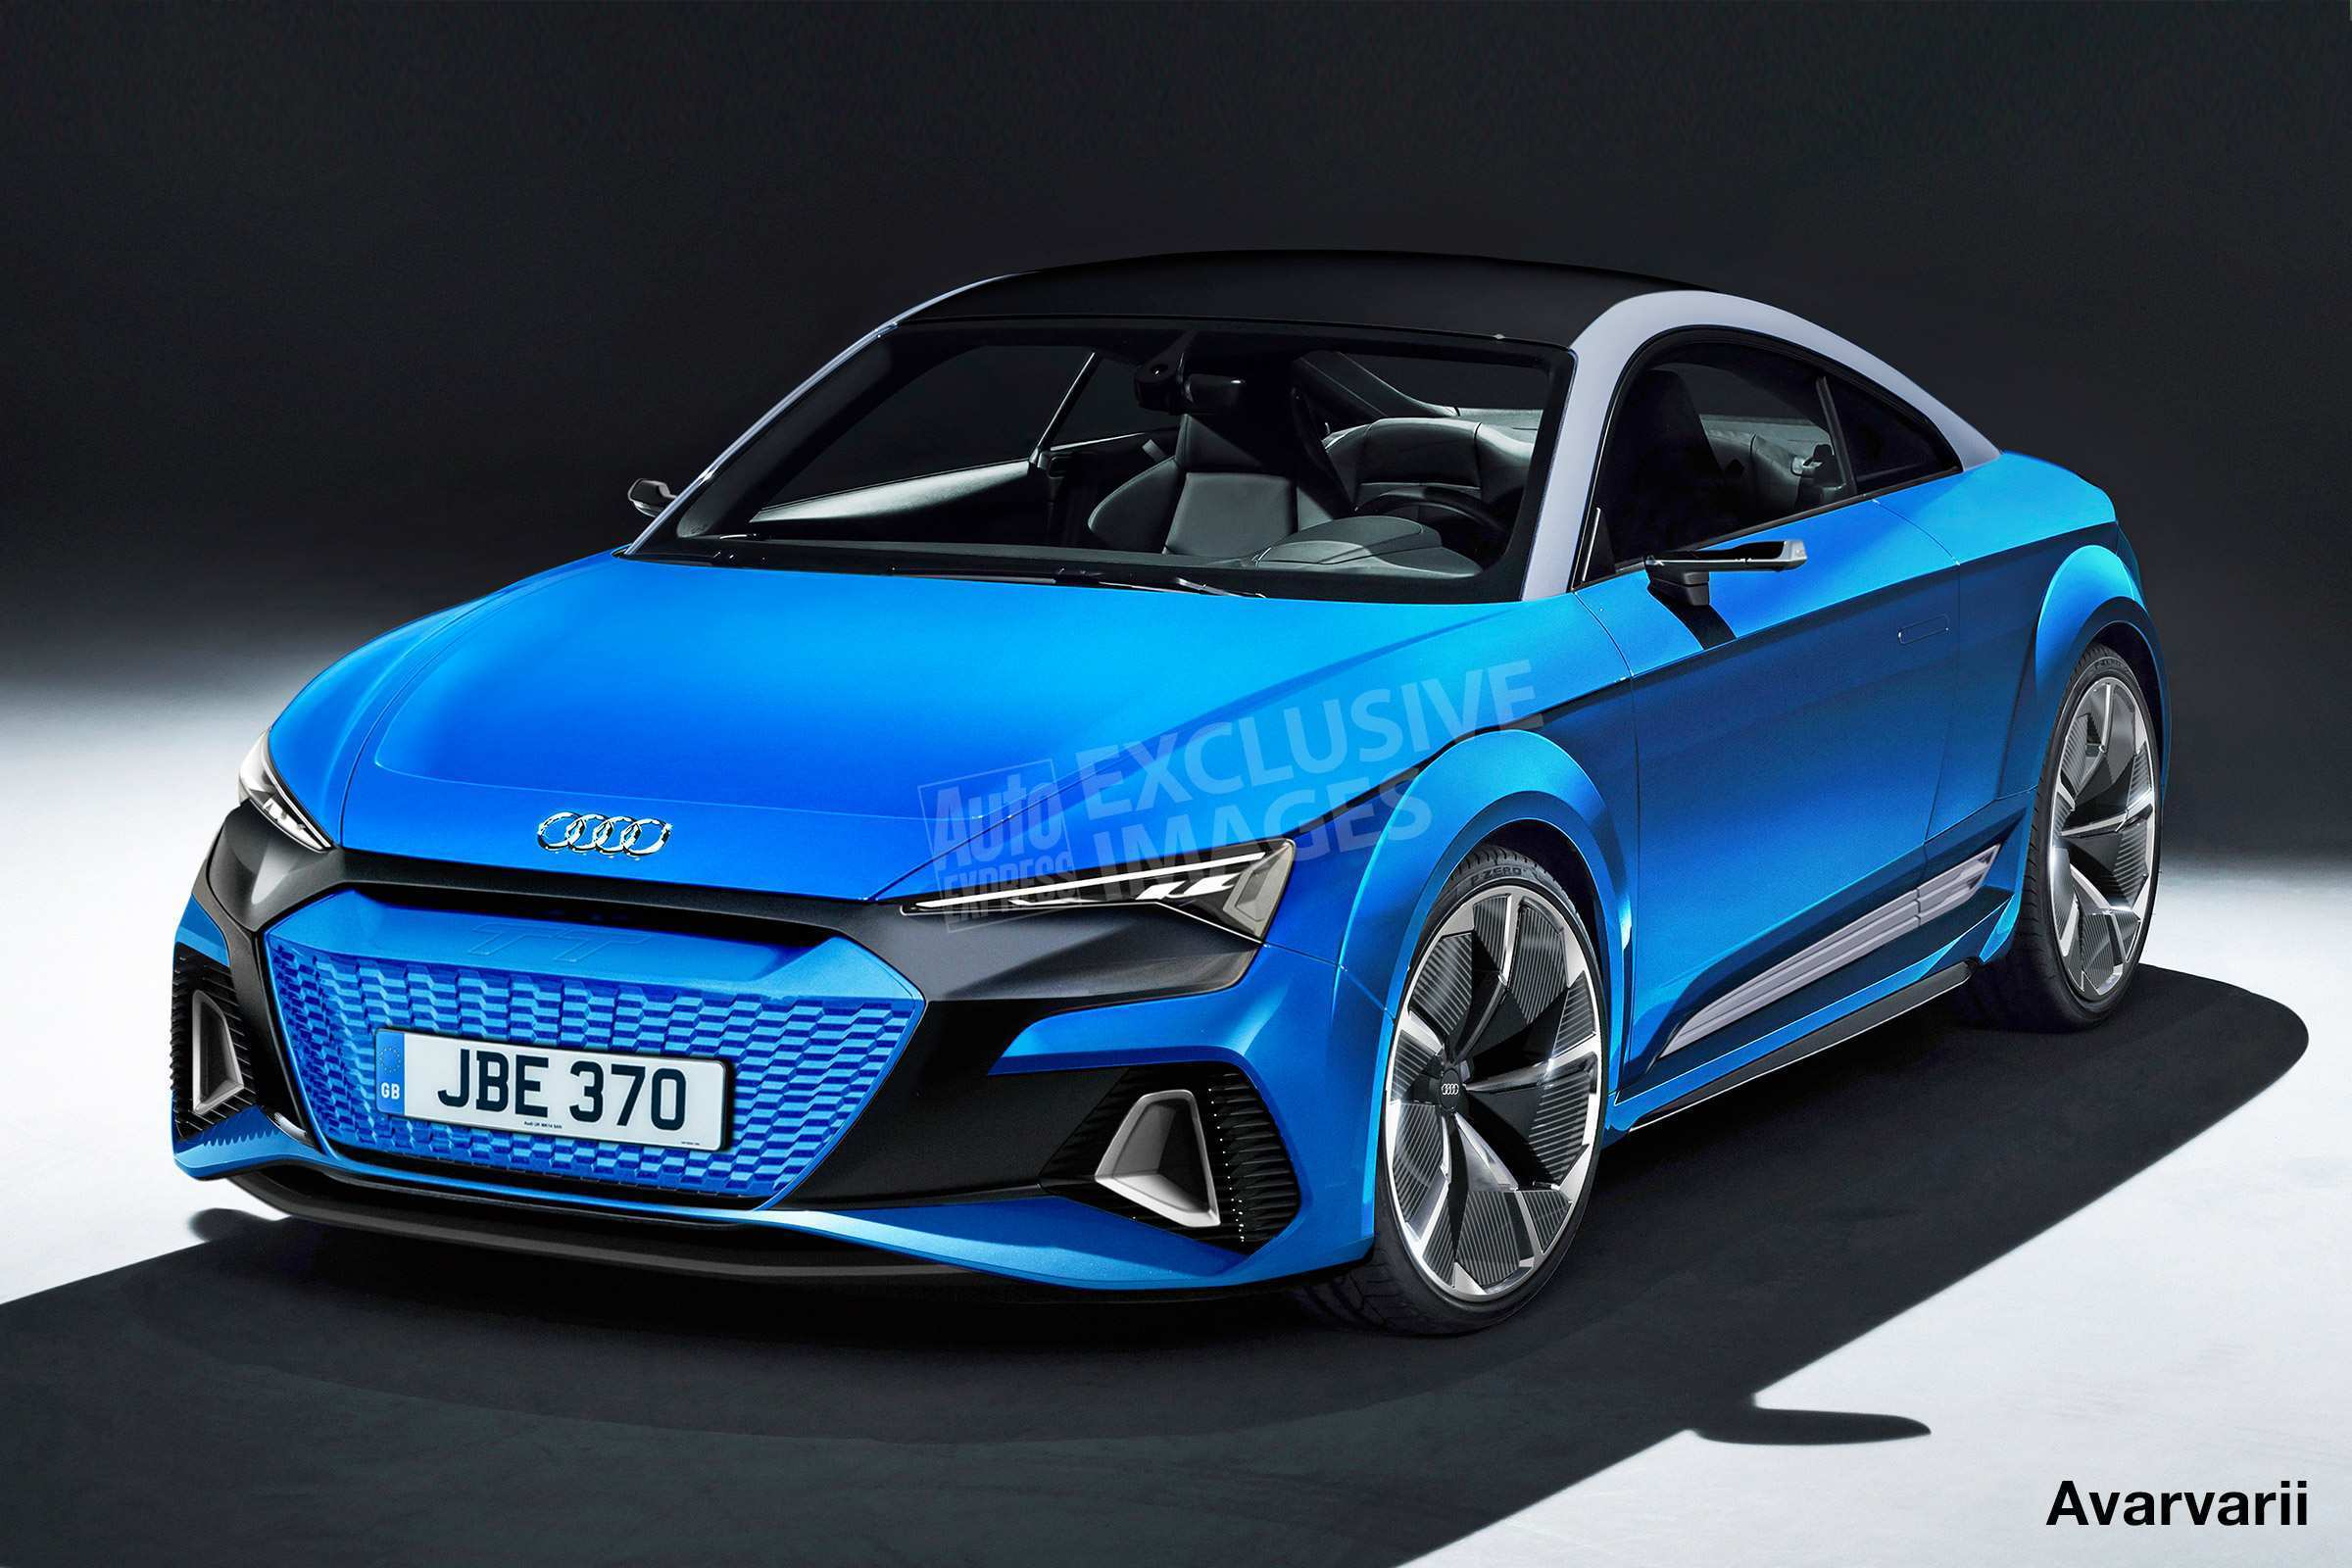 92 New Audi Tt 2020 4 Door Redesign